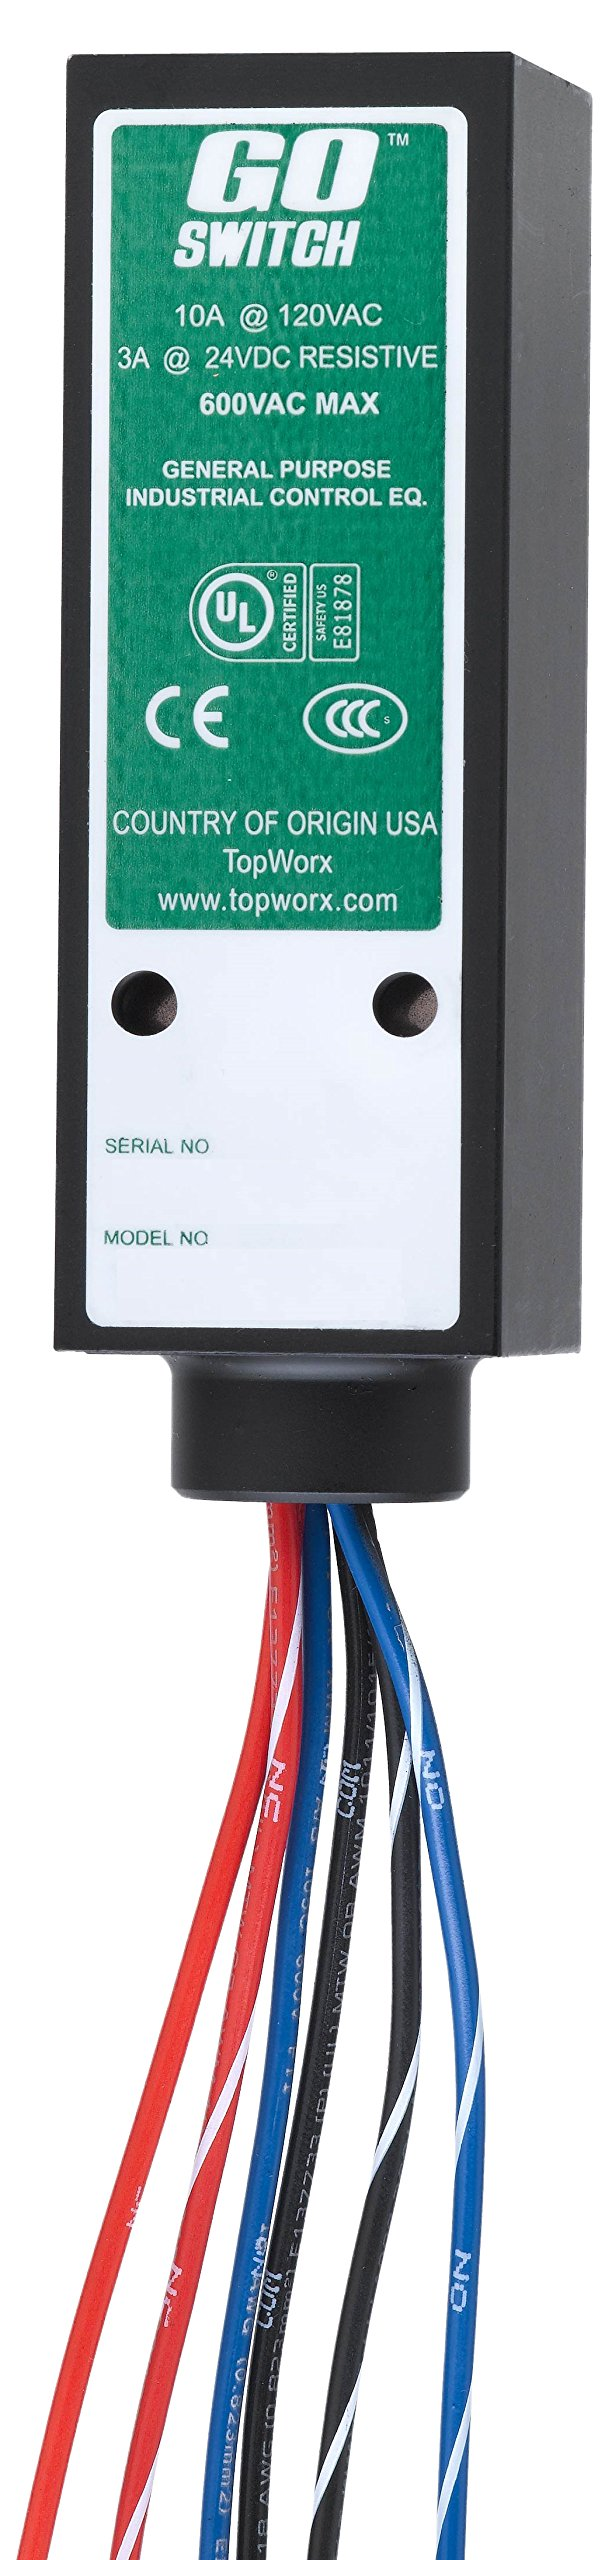 GO Switch 81-20518-A3  SPDT Proximity Sensor, 304 SS 3 Amp/24 VDC, General Purpose, 6 mm Sensing Distance, 10 Amp/120 VAC, Limit Switch Style, 1/2'' NPT Conduit, 6' PVC Lead Wires